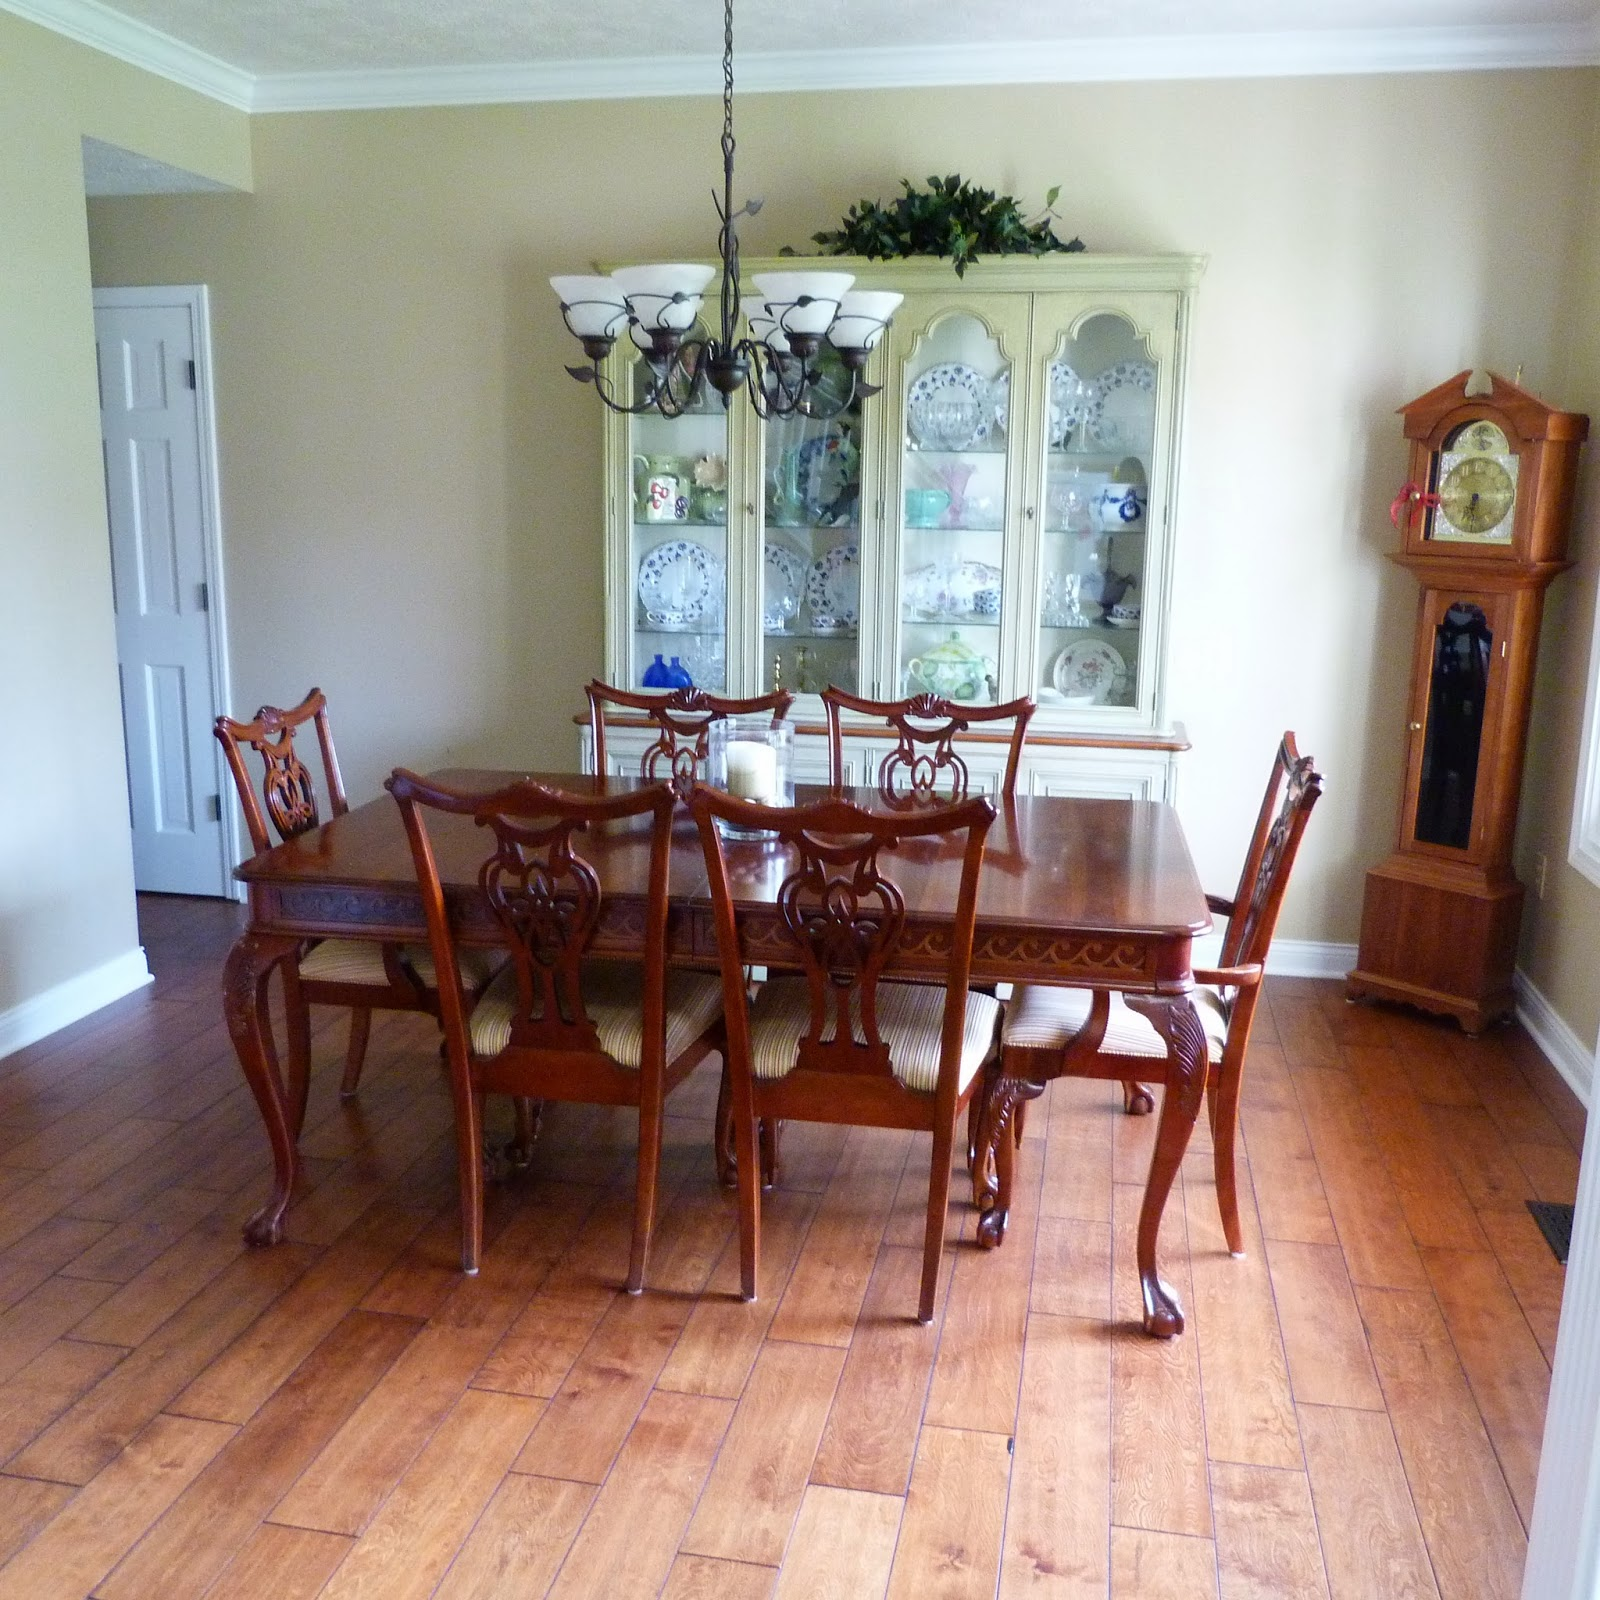 Dining Room Us: House Envy: Client Dining Room Update